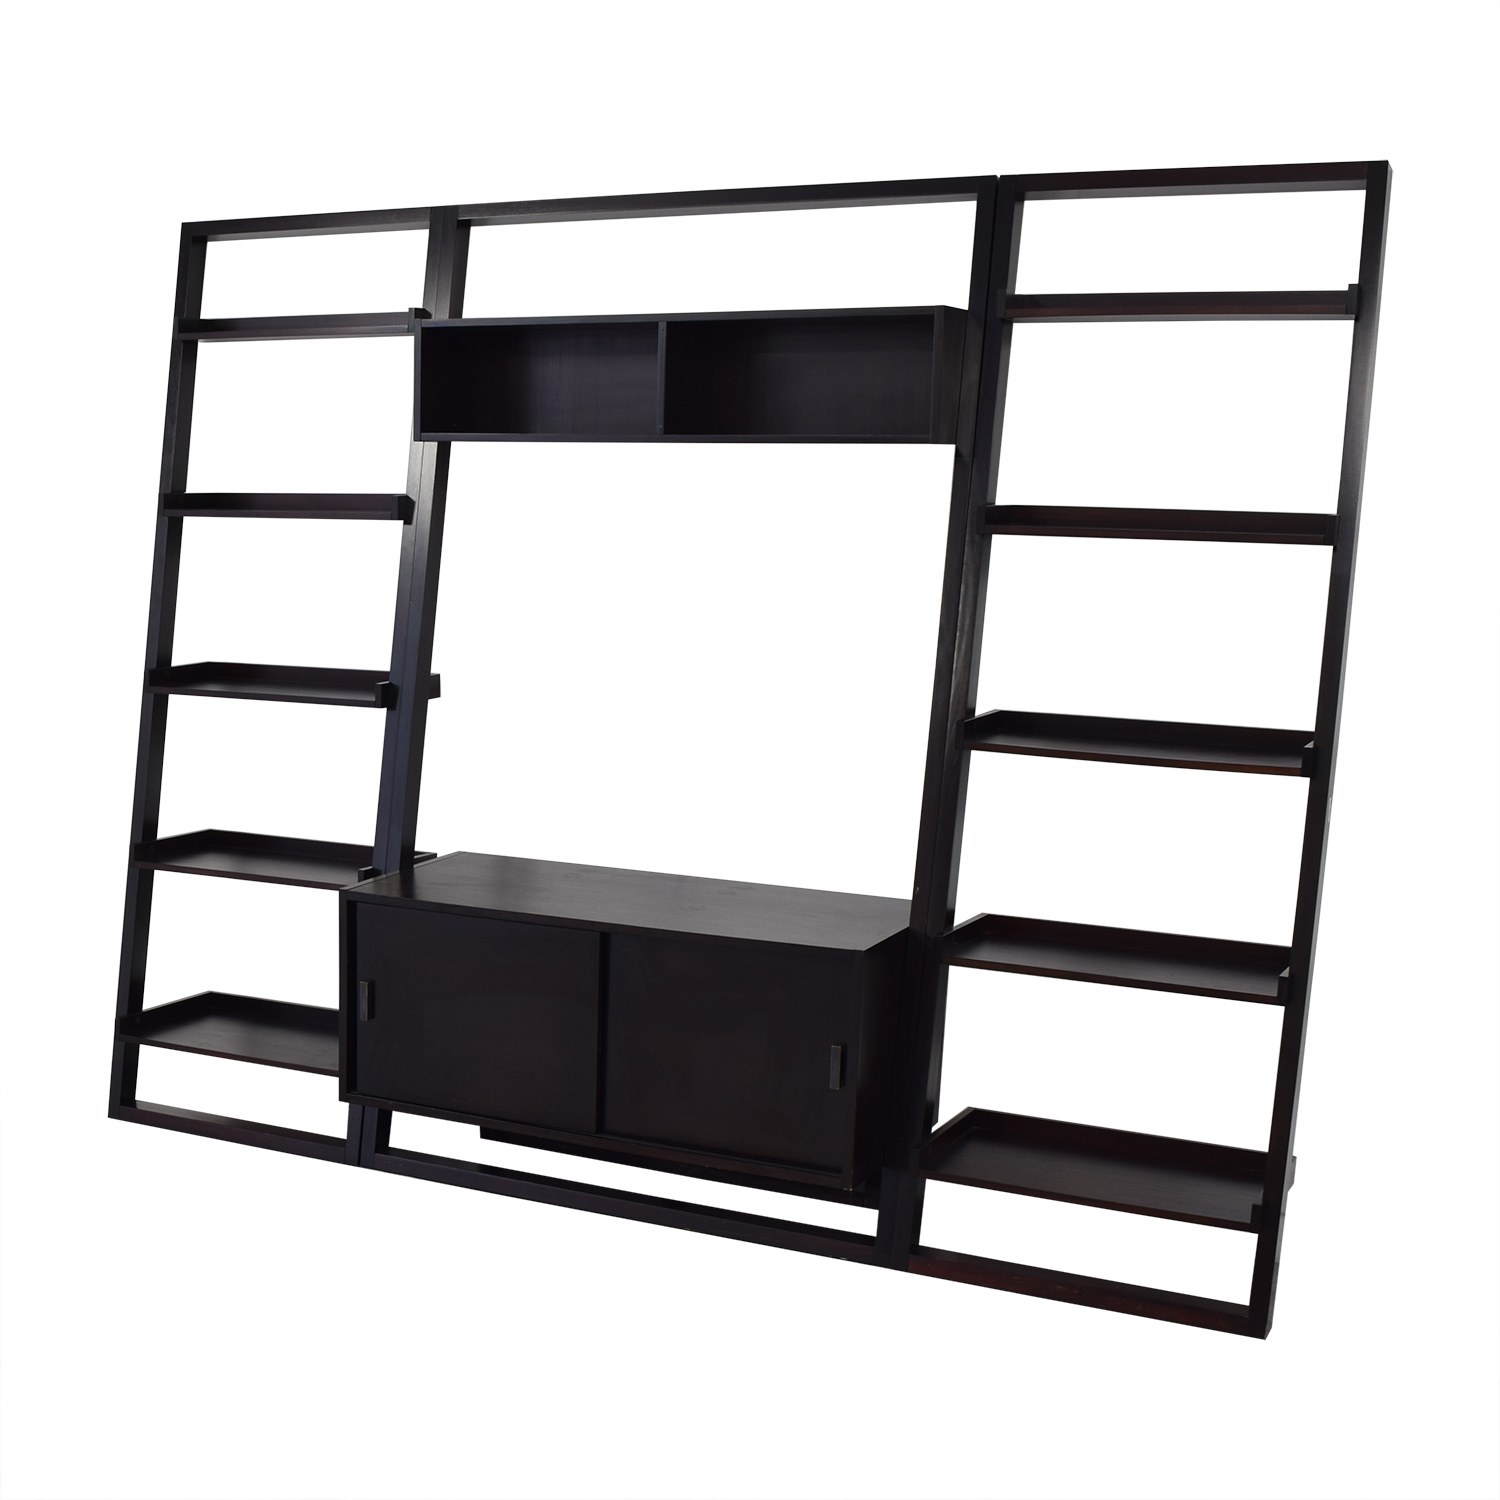 Crate & Barrel Crate & Barrel Sawyer Media Stand with Bookcases used